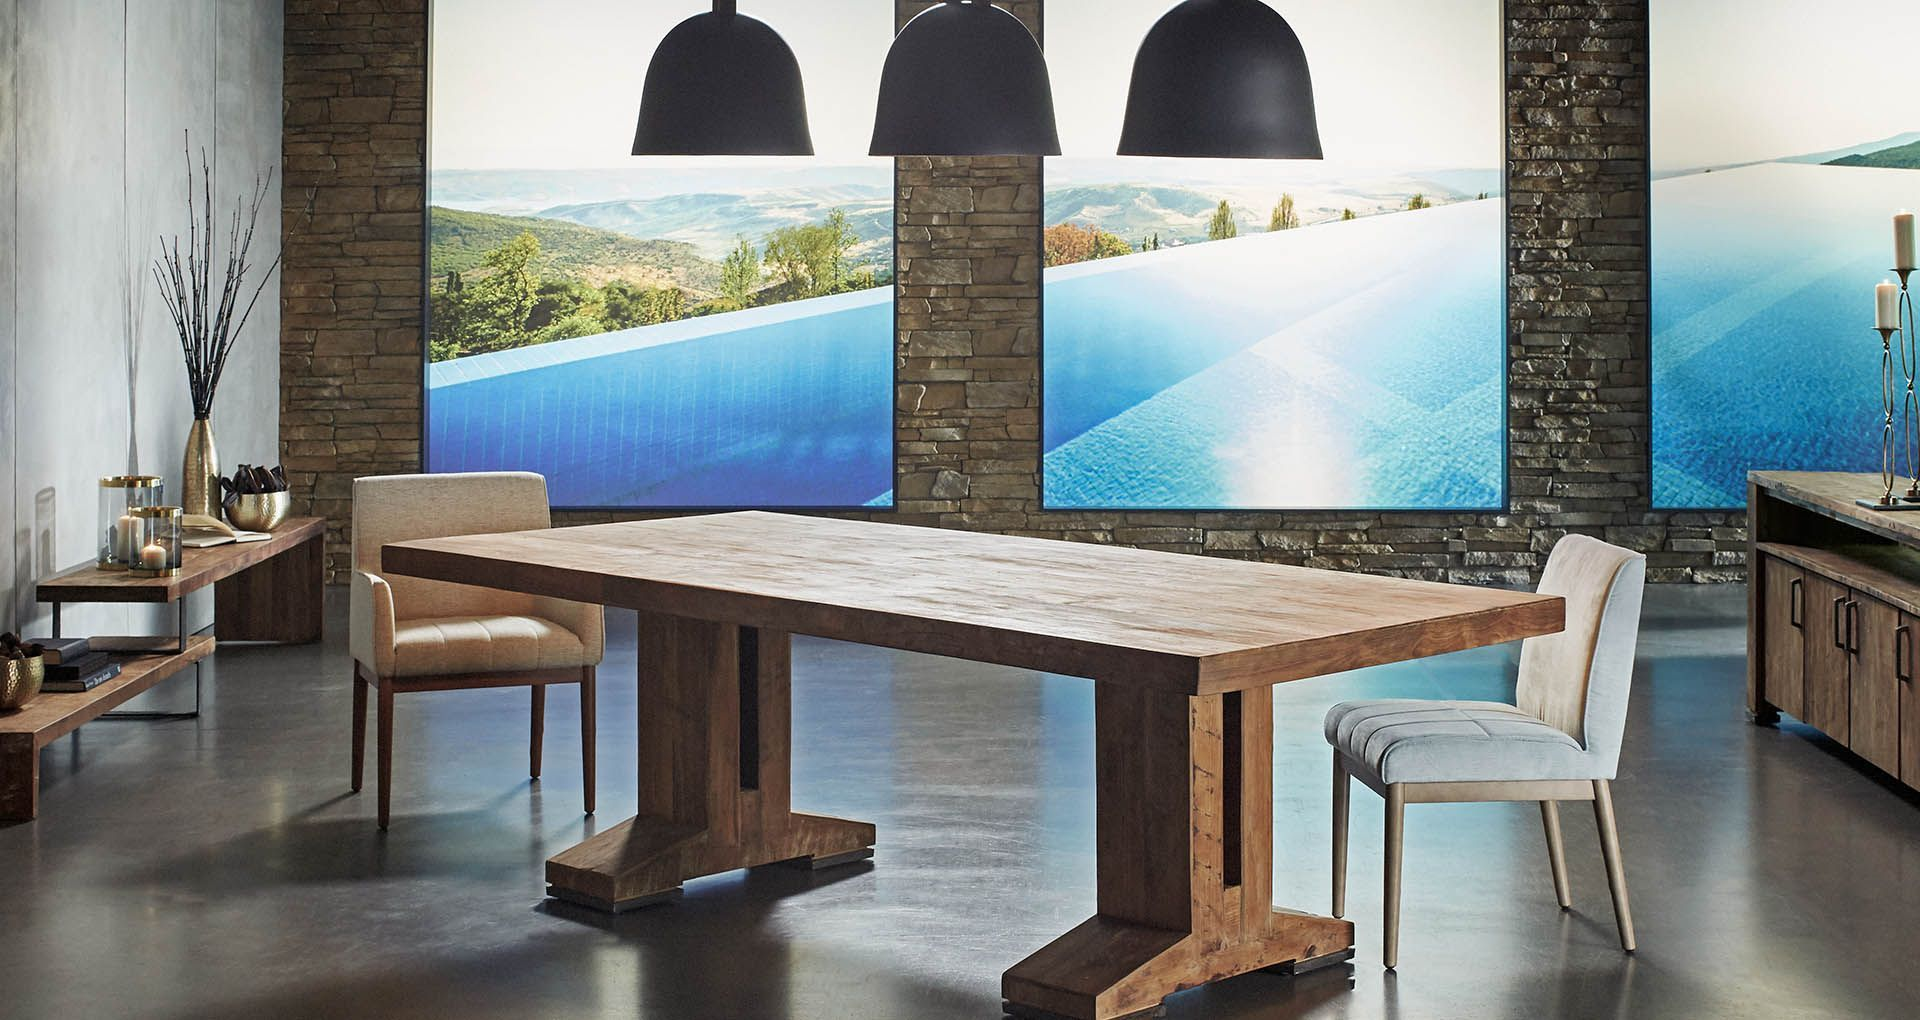 Soul Rectangle Dining Tables Products Nick Scali Furniture Dining Table Rectangle Dining Table Dining Table Dimensions [ 1020 x 1920 Pixel ]